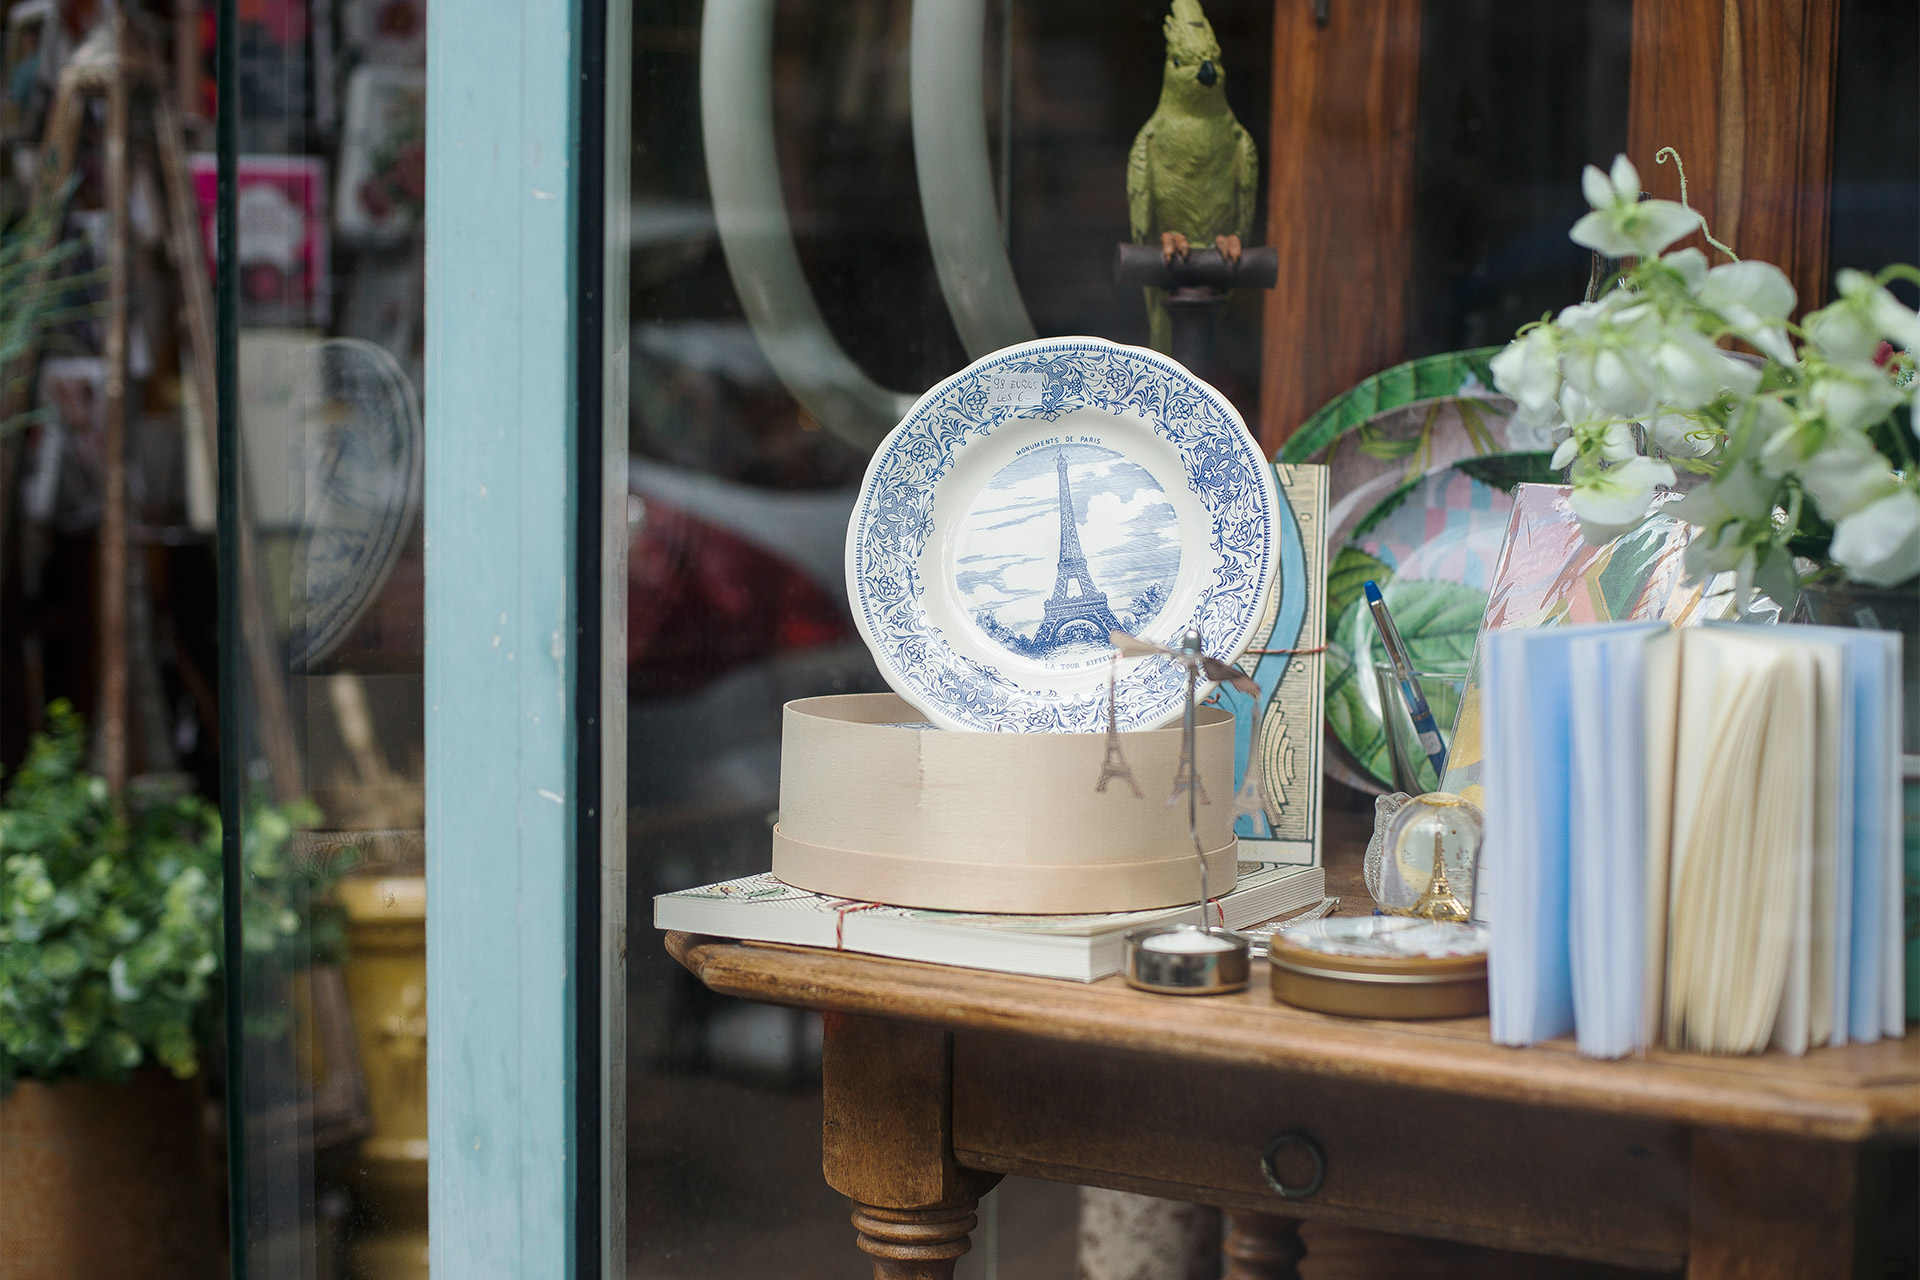 Fantastic antique and home decor shopping in the immediate area around Bailly